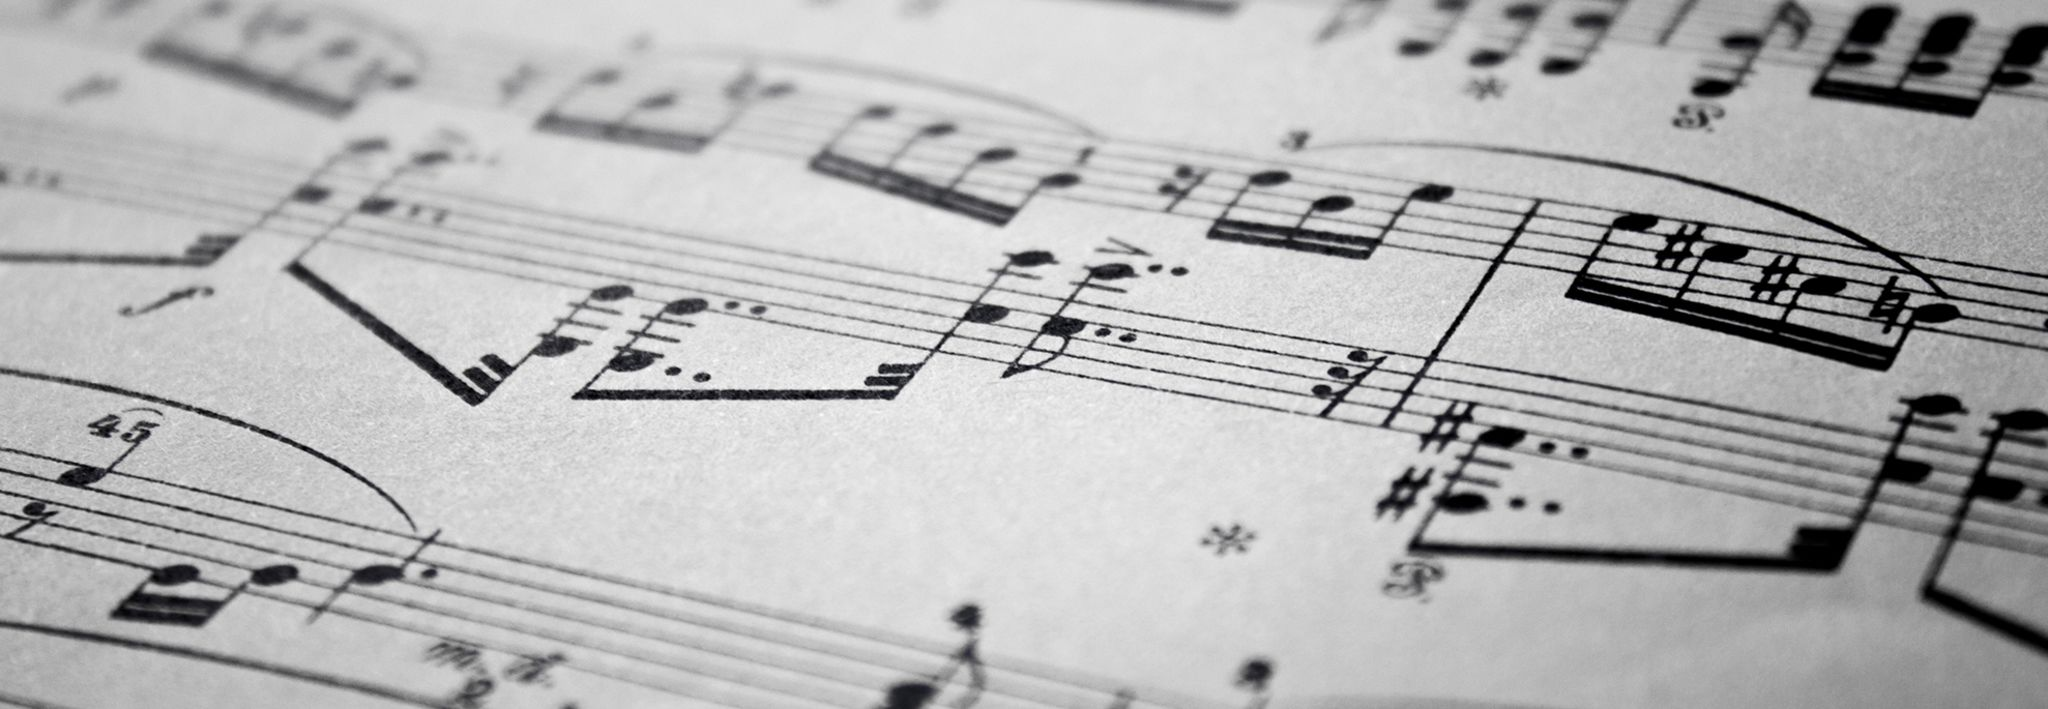 Colorado Christian University offers a great program for music majors.